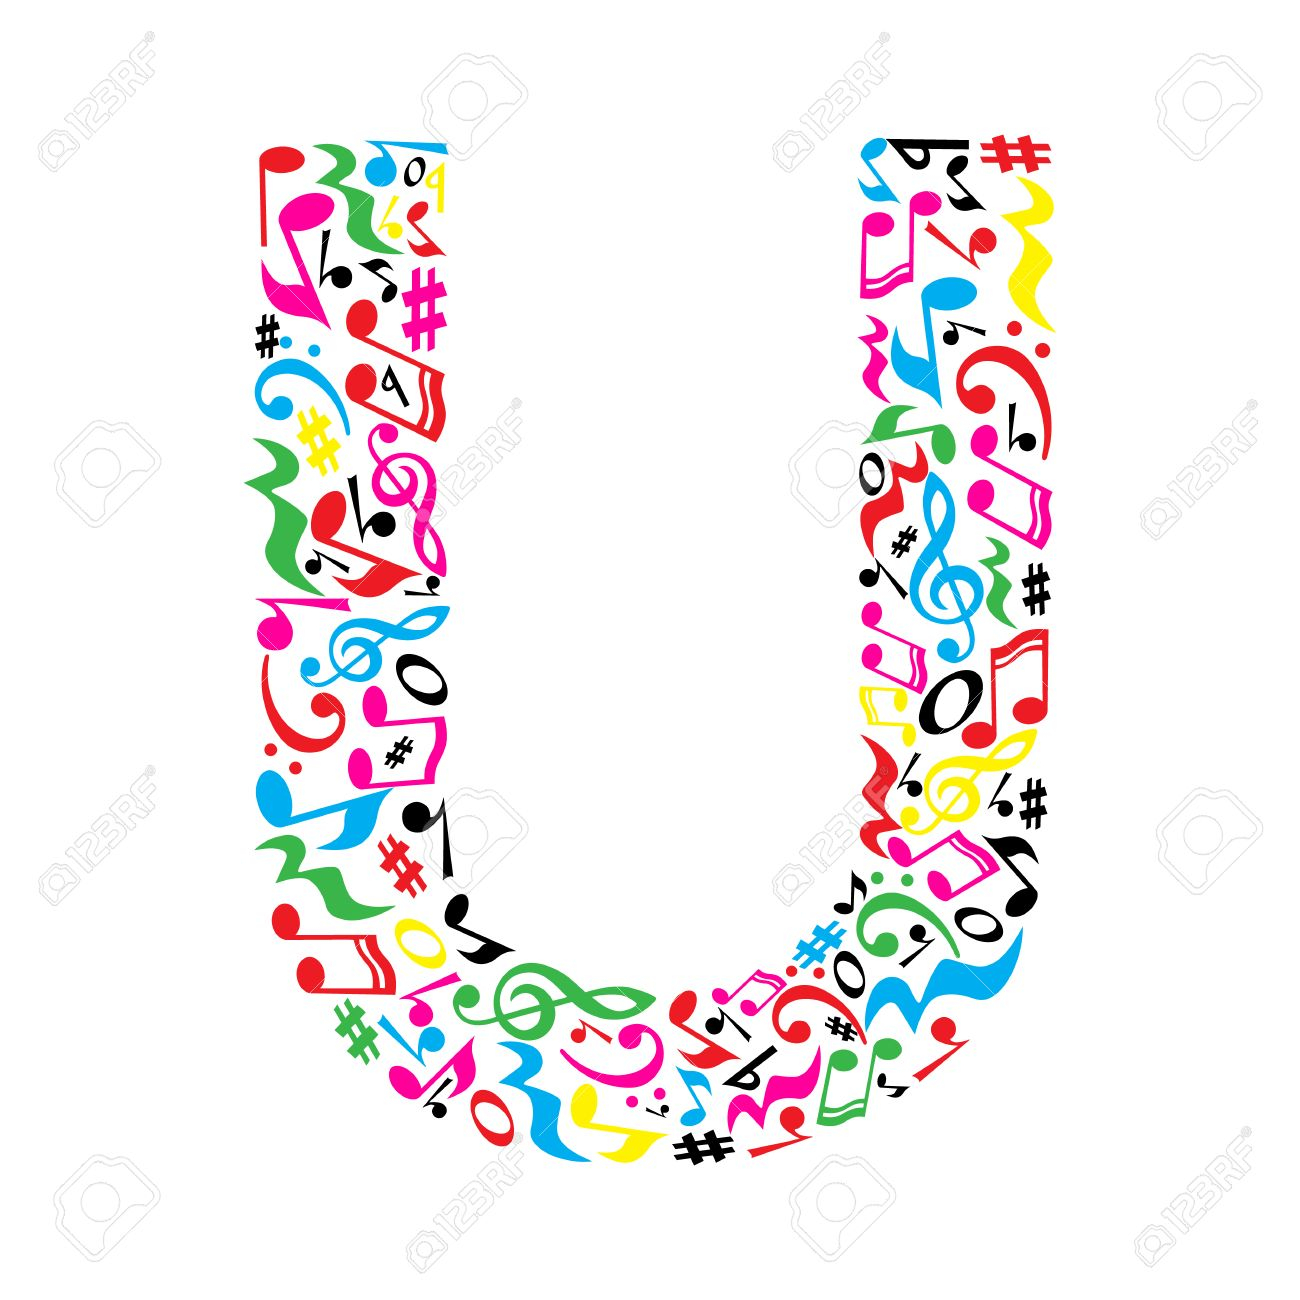 u letter made of colorful musical notes on white background